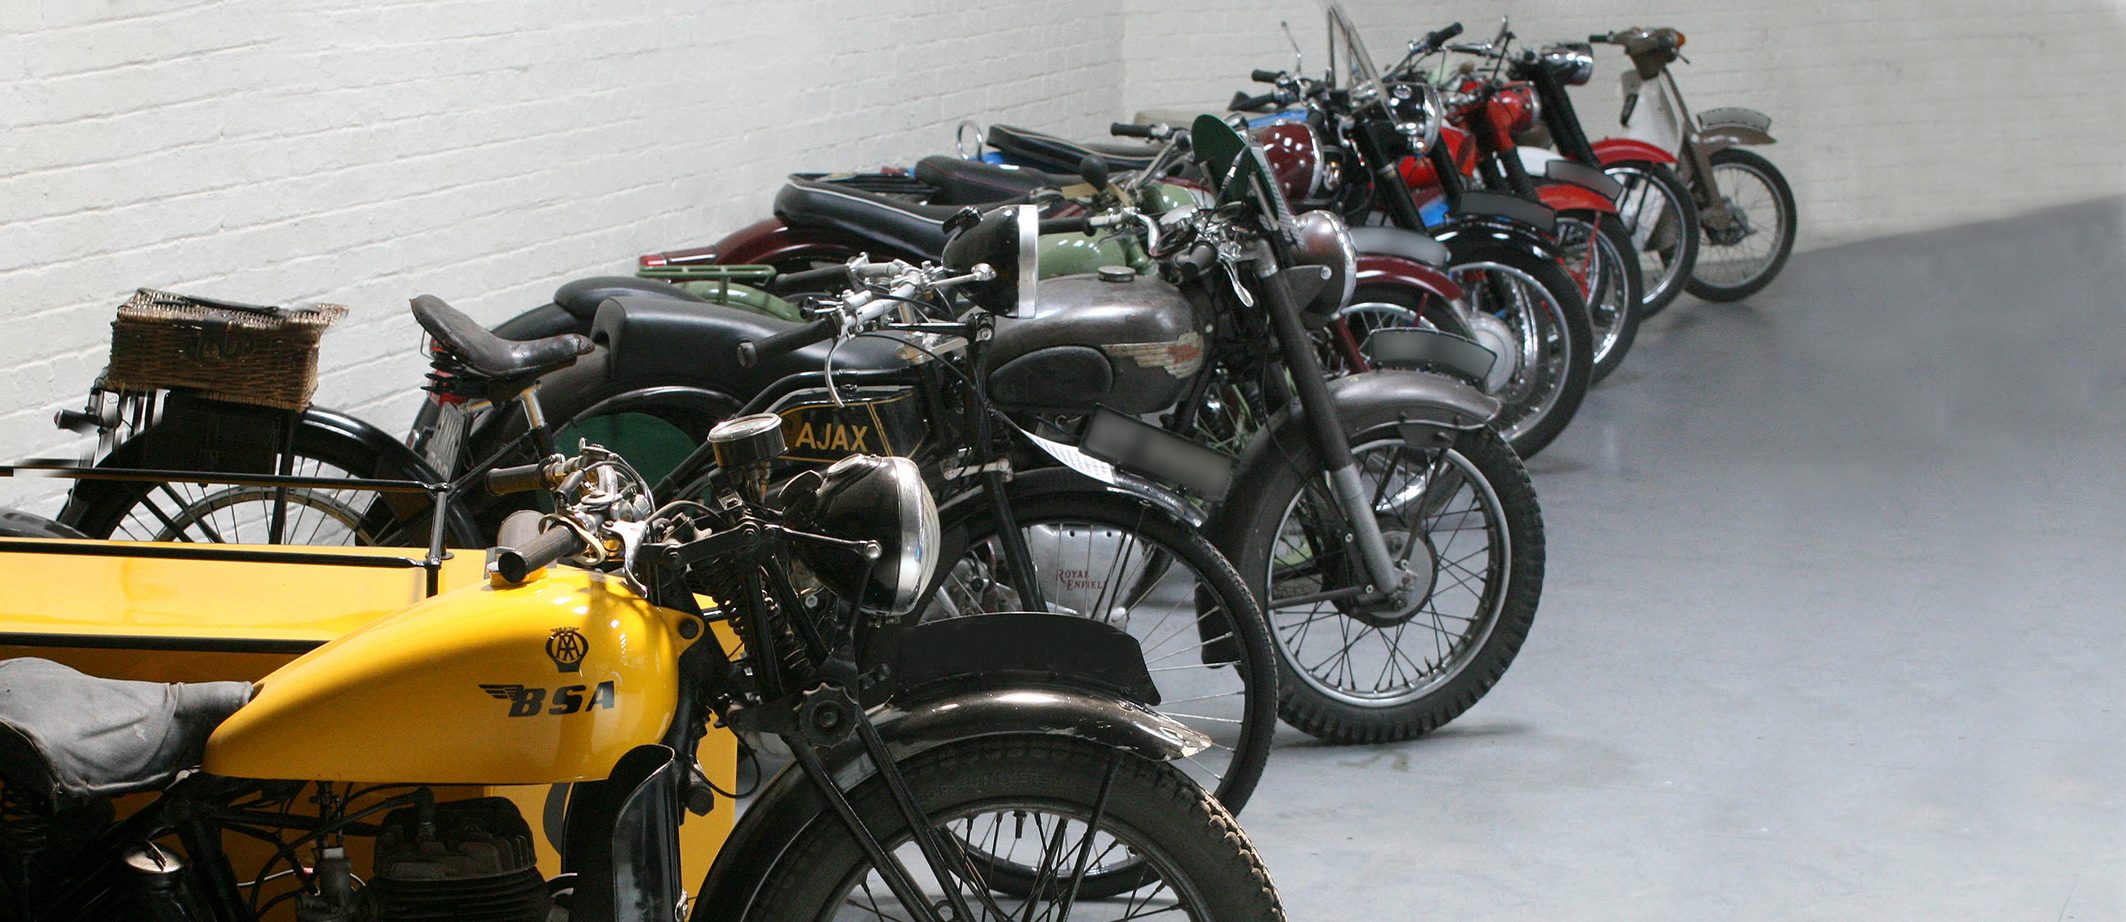 Vintage motorcycles in museum